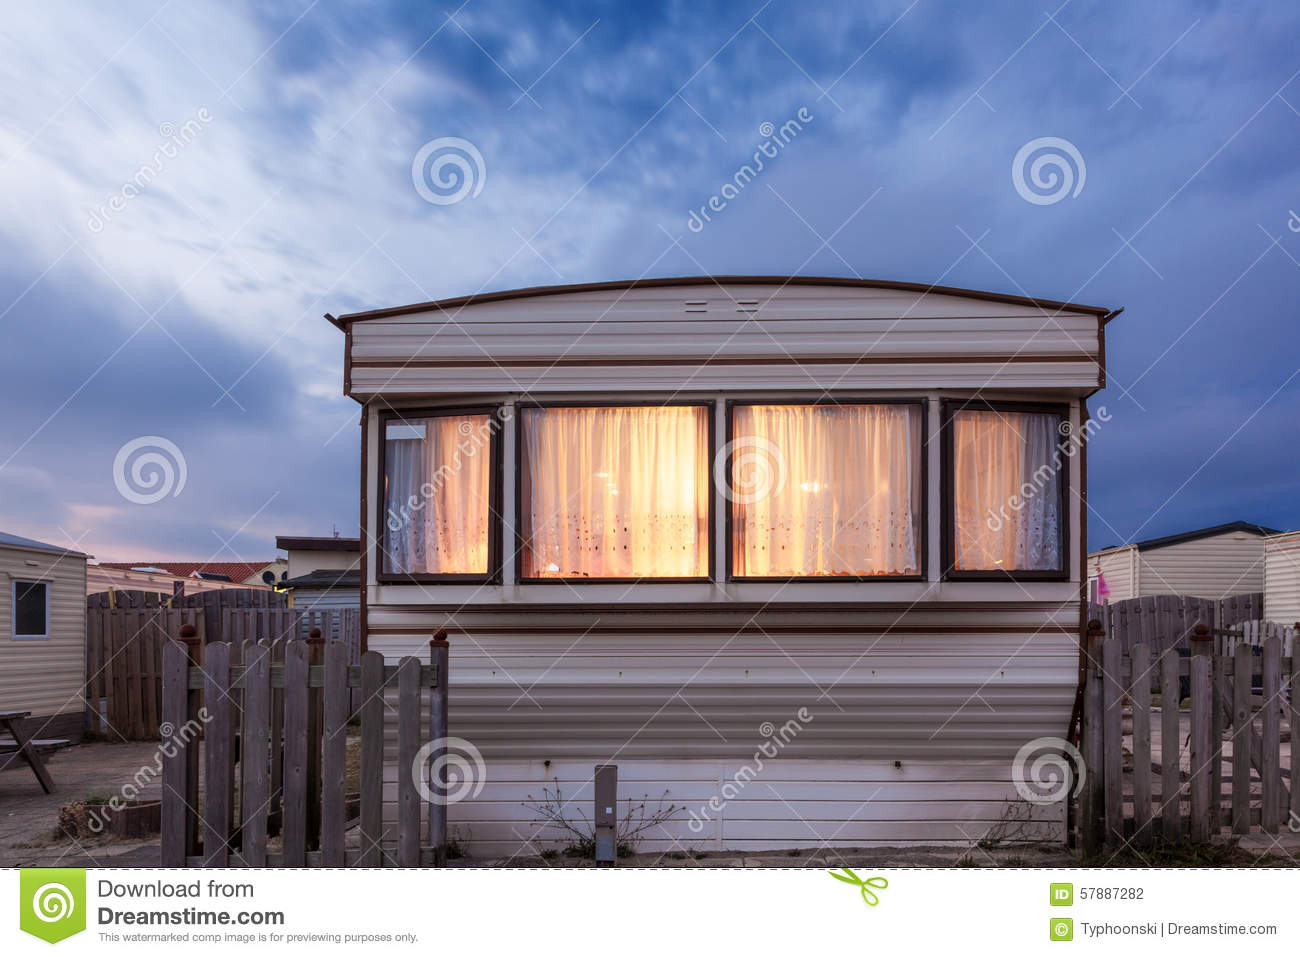 Mobile Home On A Trailer Park At Dusk Stock Photo Image